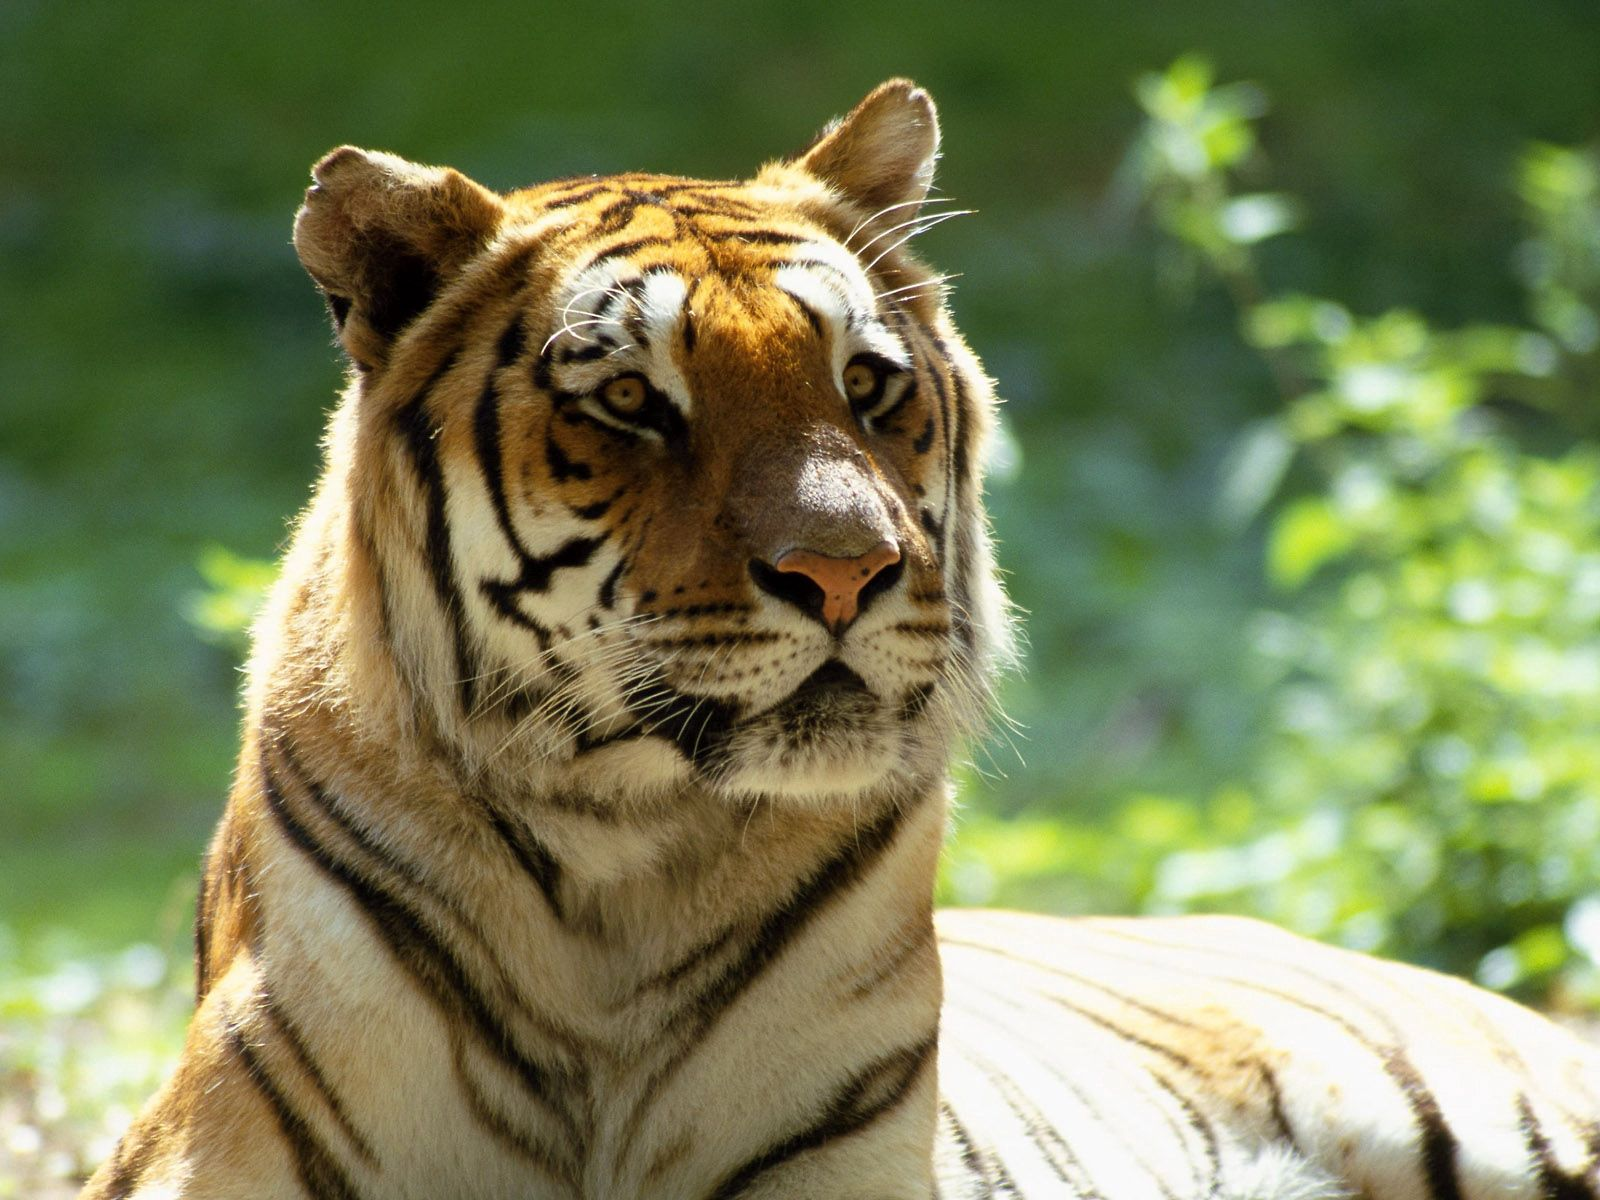 141574 download wallpaper Animals, Tiger, Big Cat, Muzzle, Striped screensavers and pictures for free